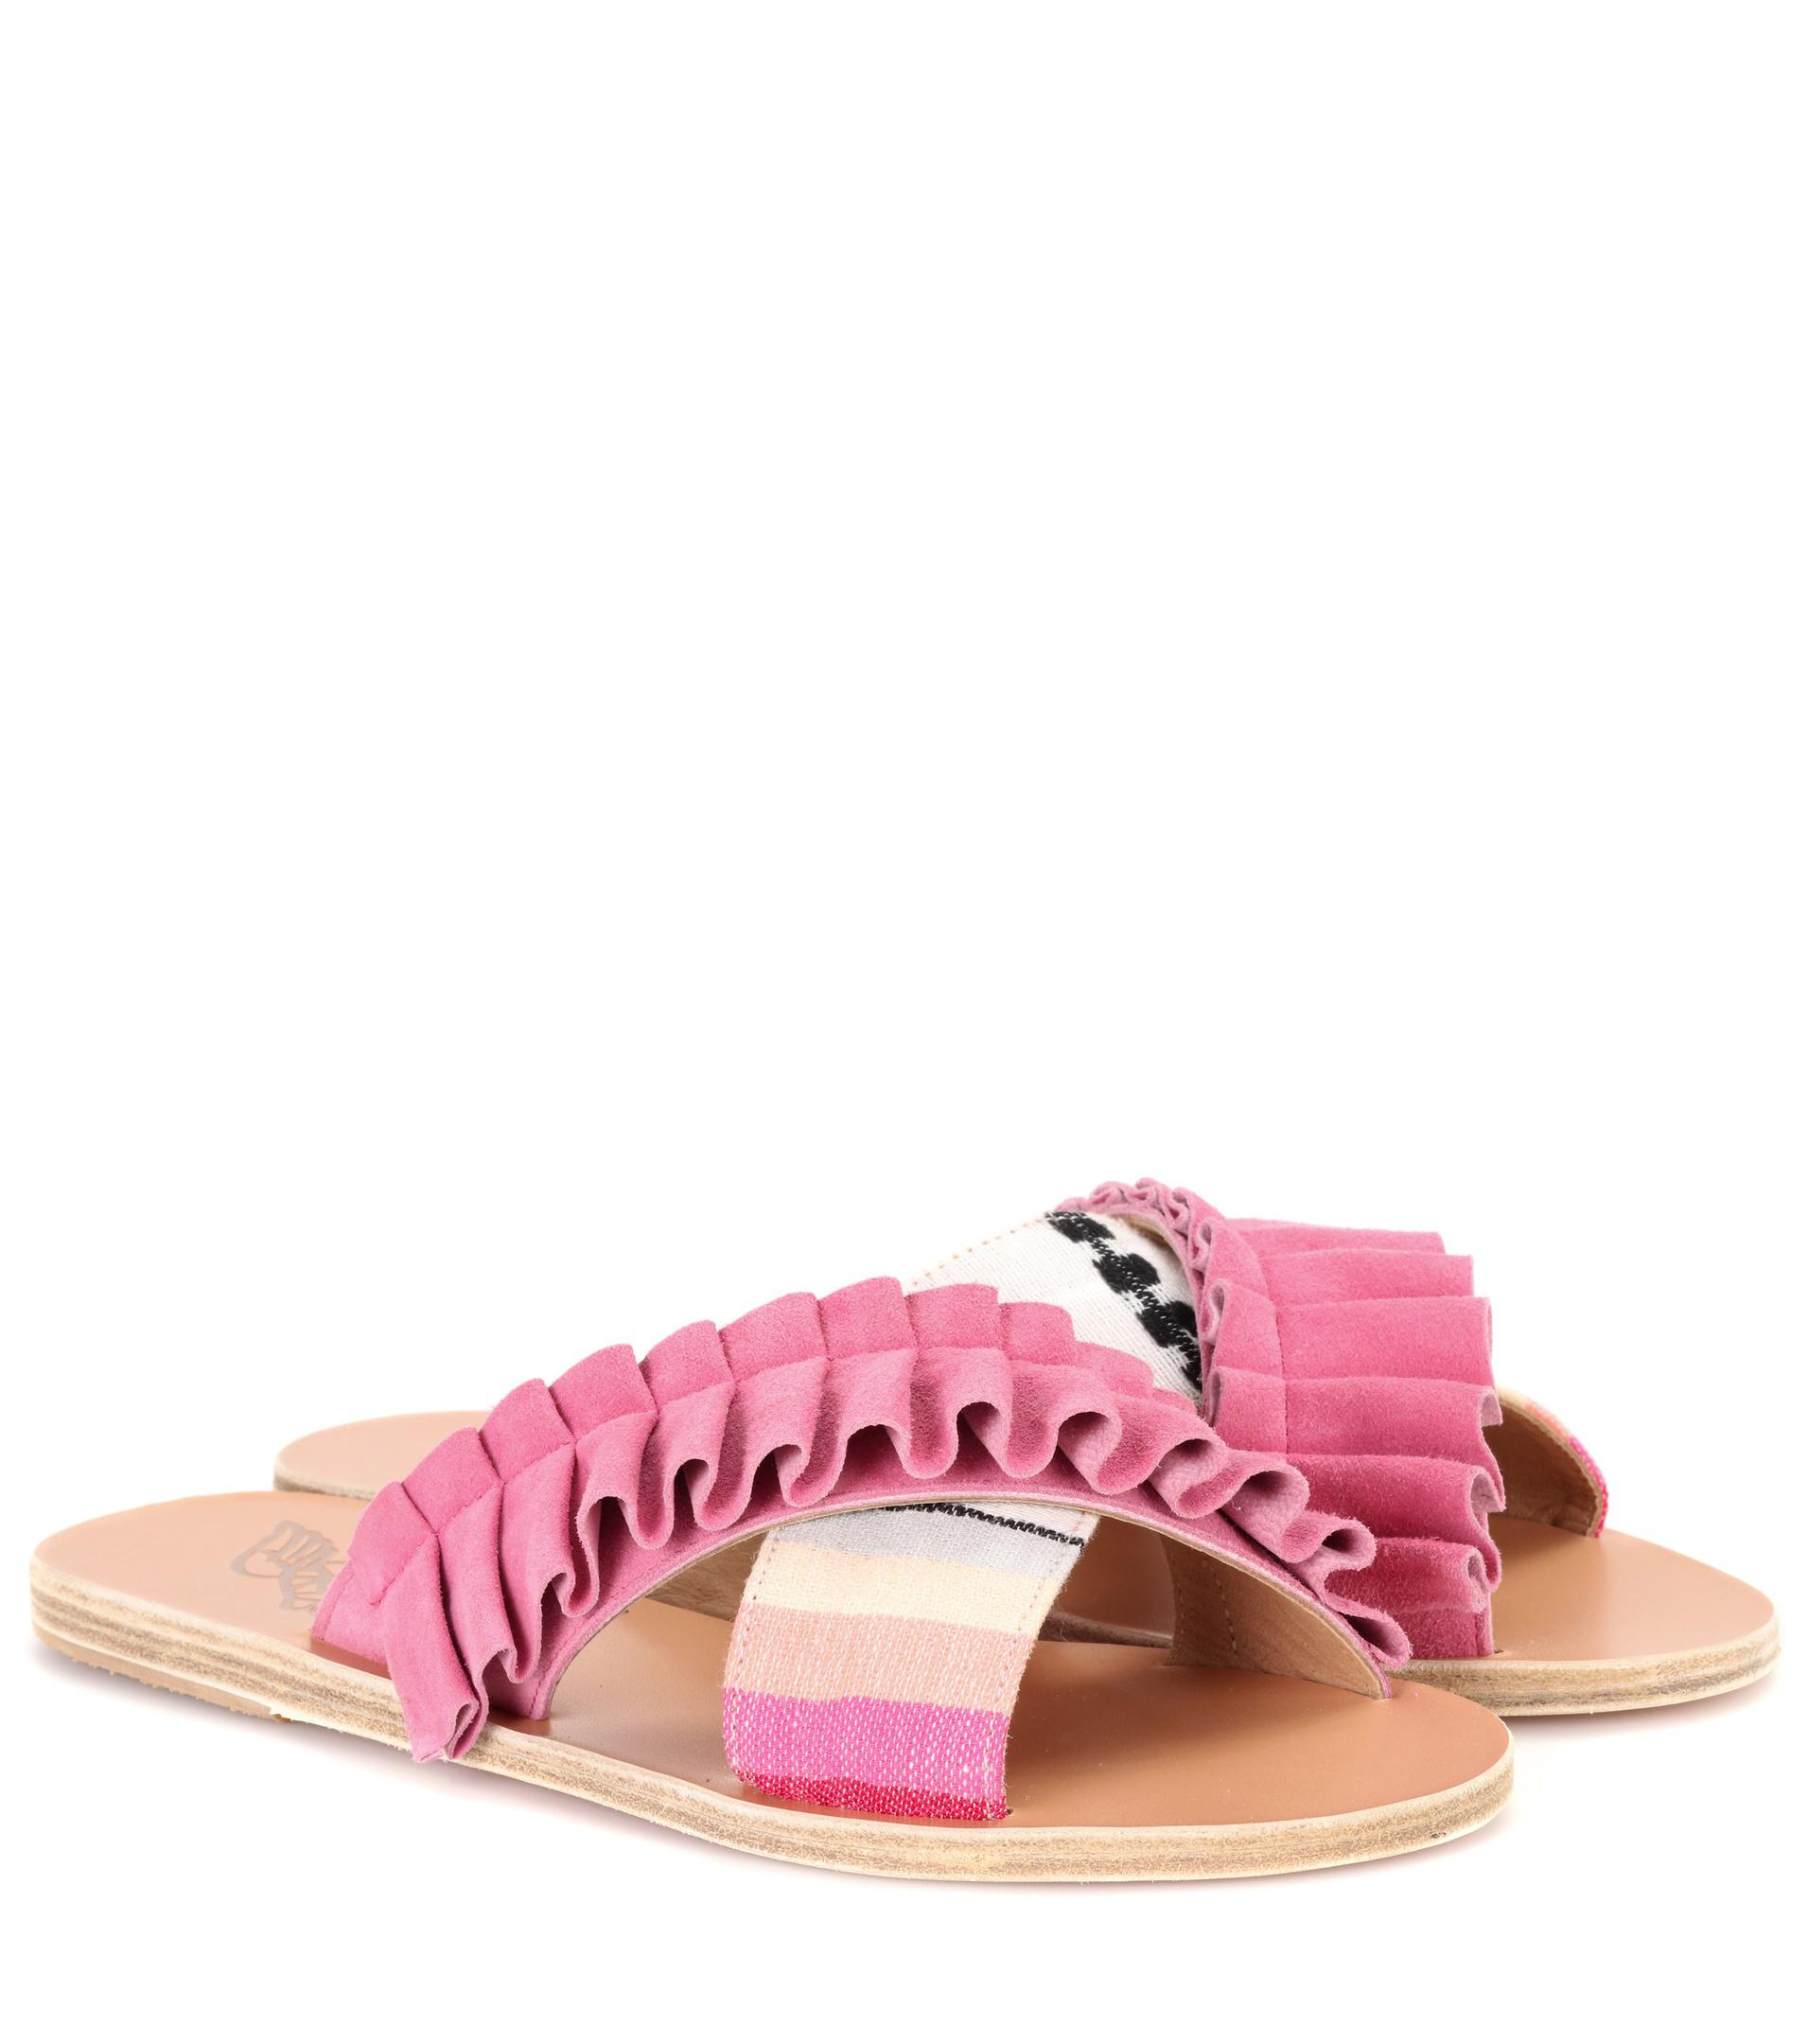 Lemlem X Ancient Greek Sandals Thais Frills sandals Free Shipping Excellent For Sale Free Shipping Great Deals Cheap Sale Store Online Cheap xcUTG